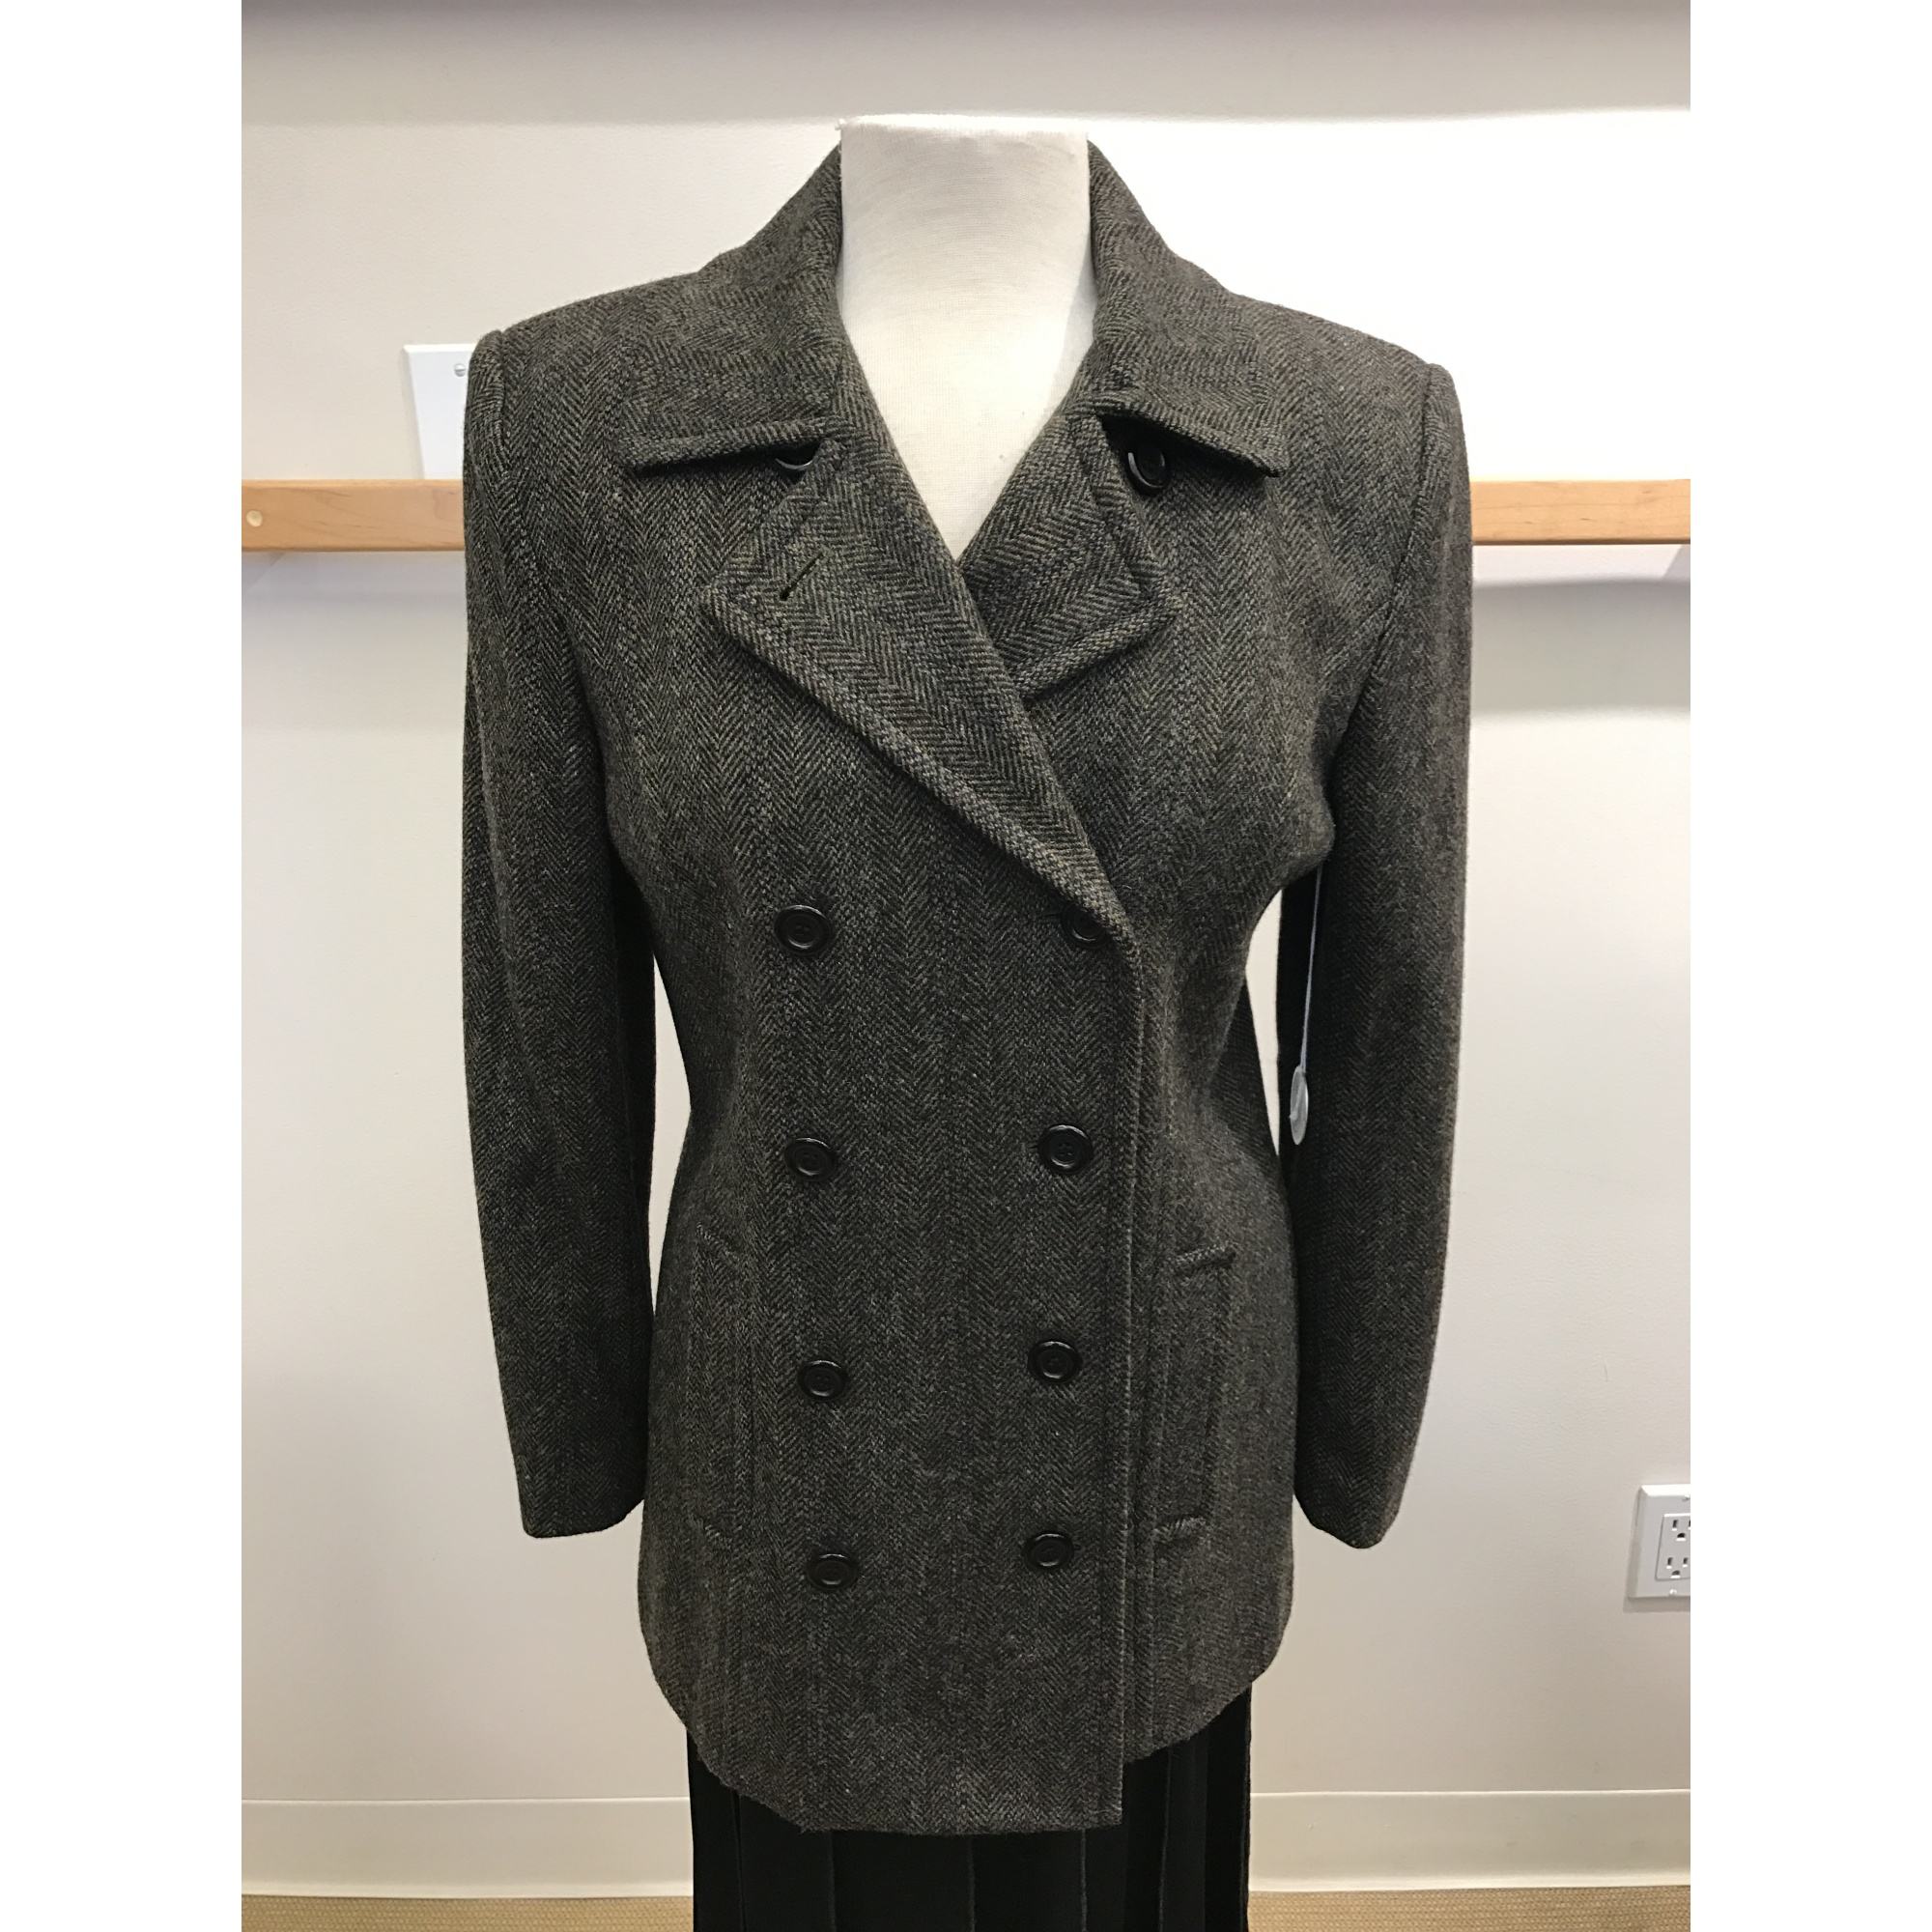 Black Taupe Tweed Herringbone Double Breasted Outerwear Jacket (Style# 9222F7)